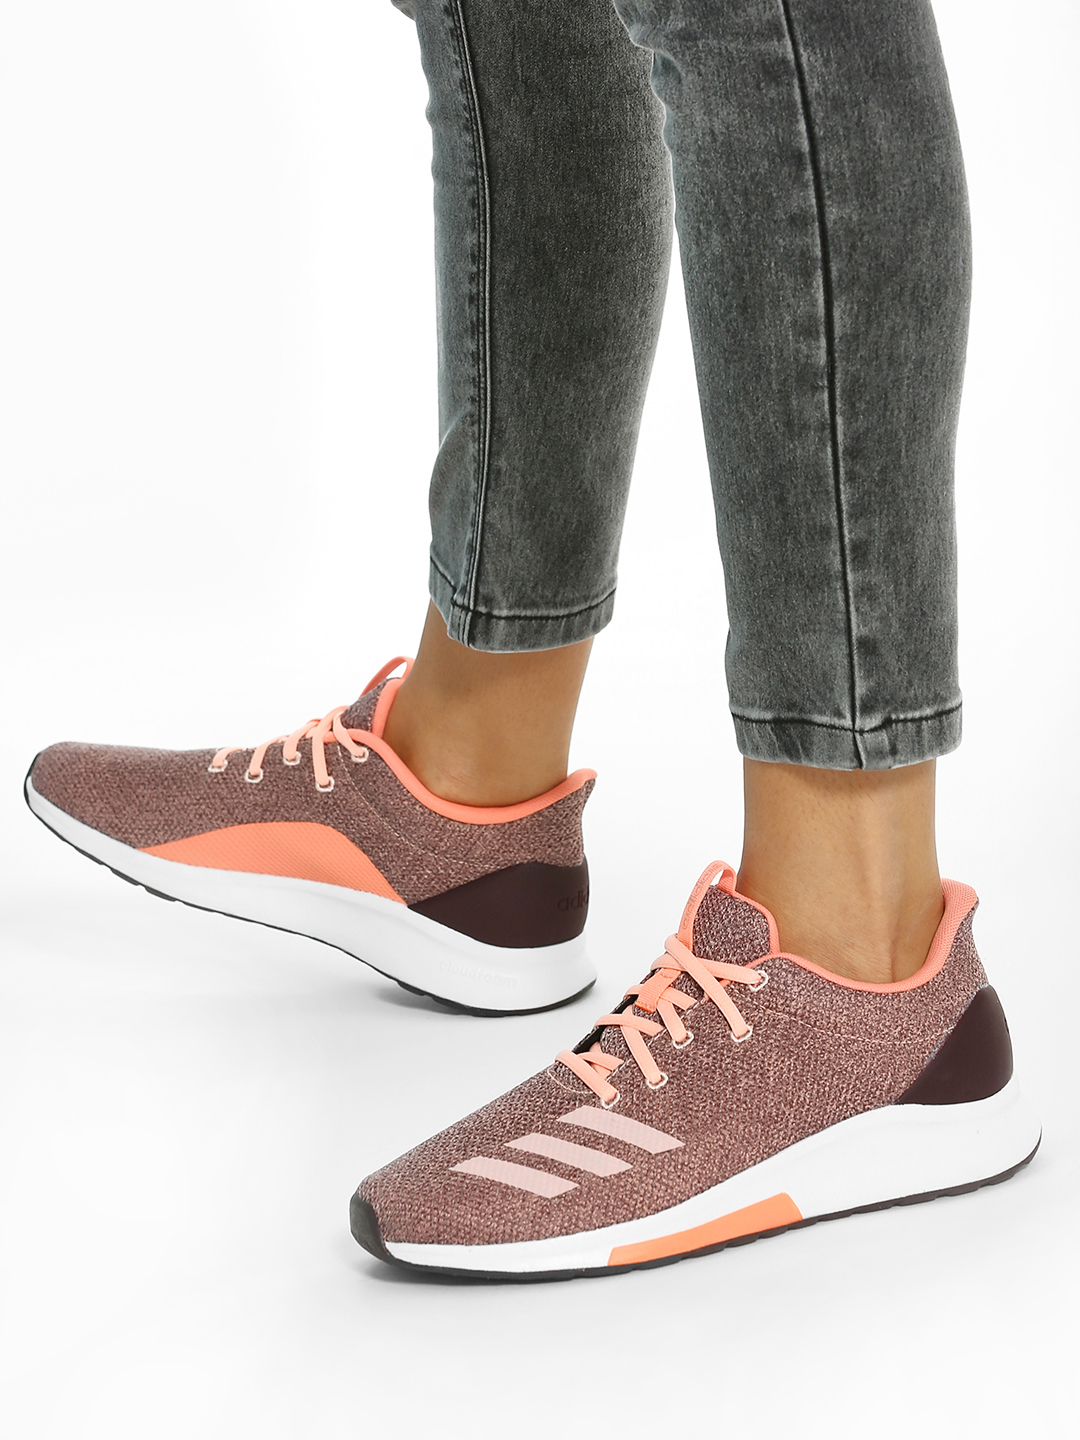 Adidas Pink Puremotion Shoes 1